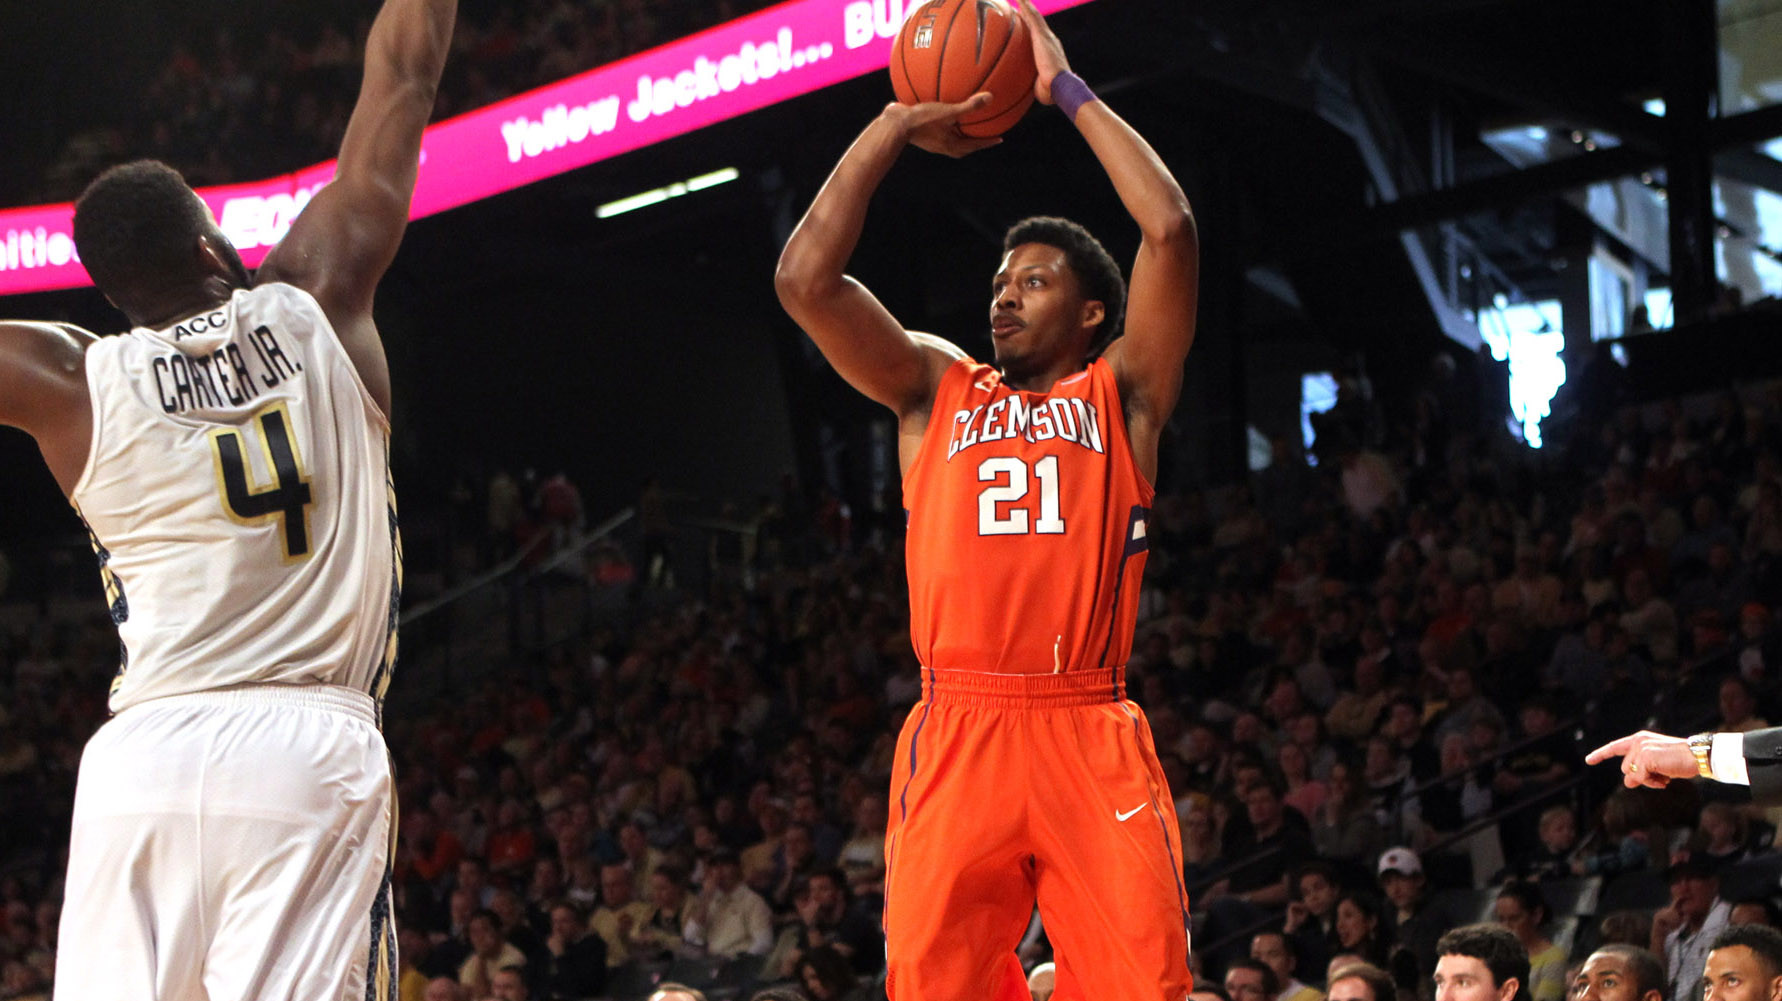 Clemson Comes From Behind to Beat Georgia Tech, 63-55